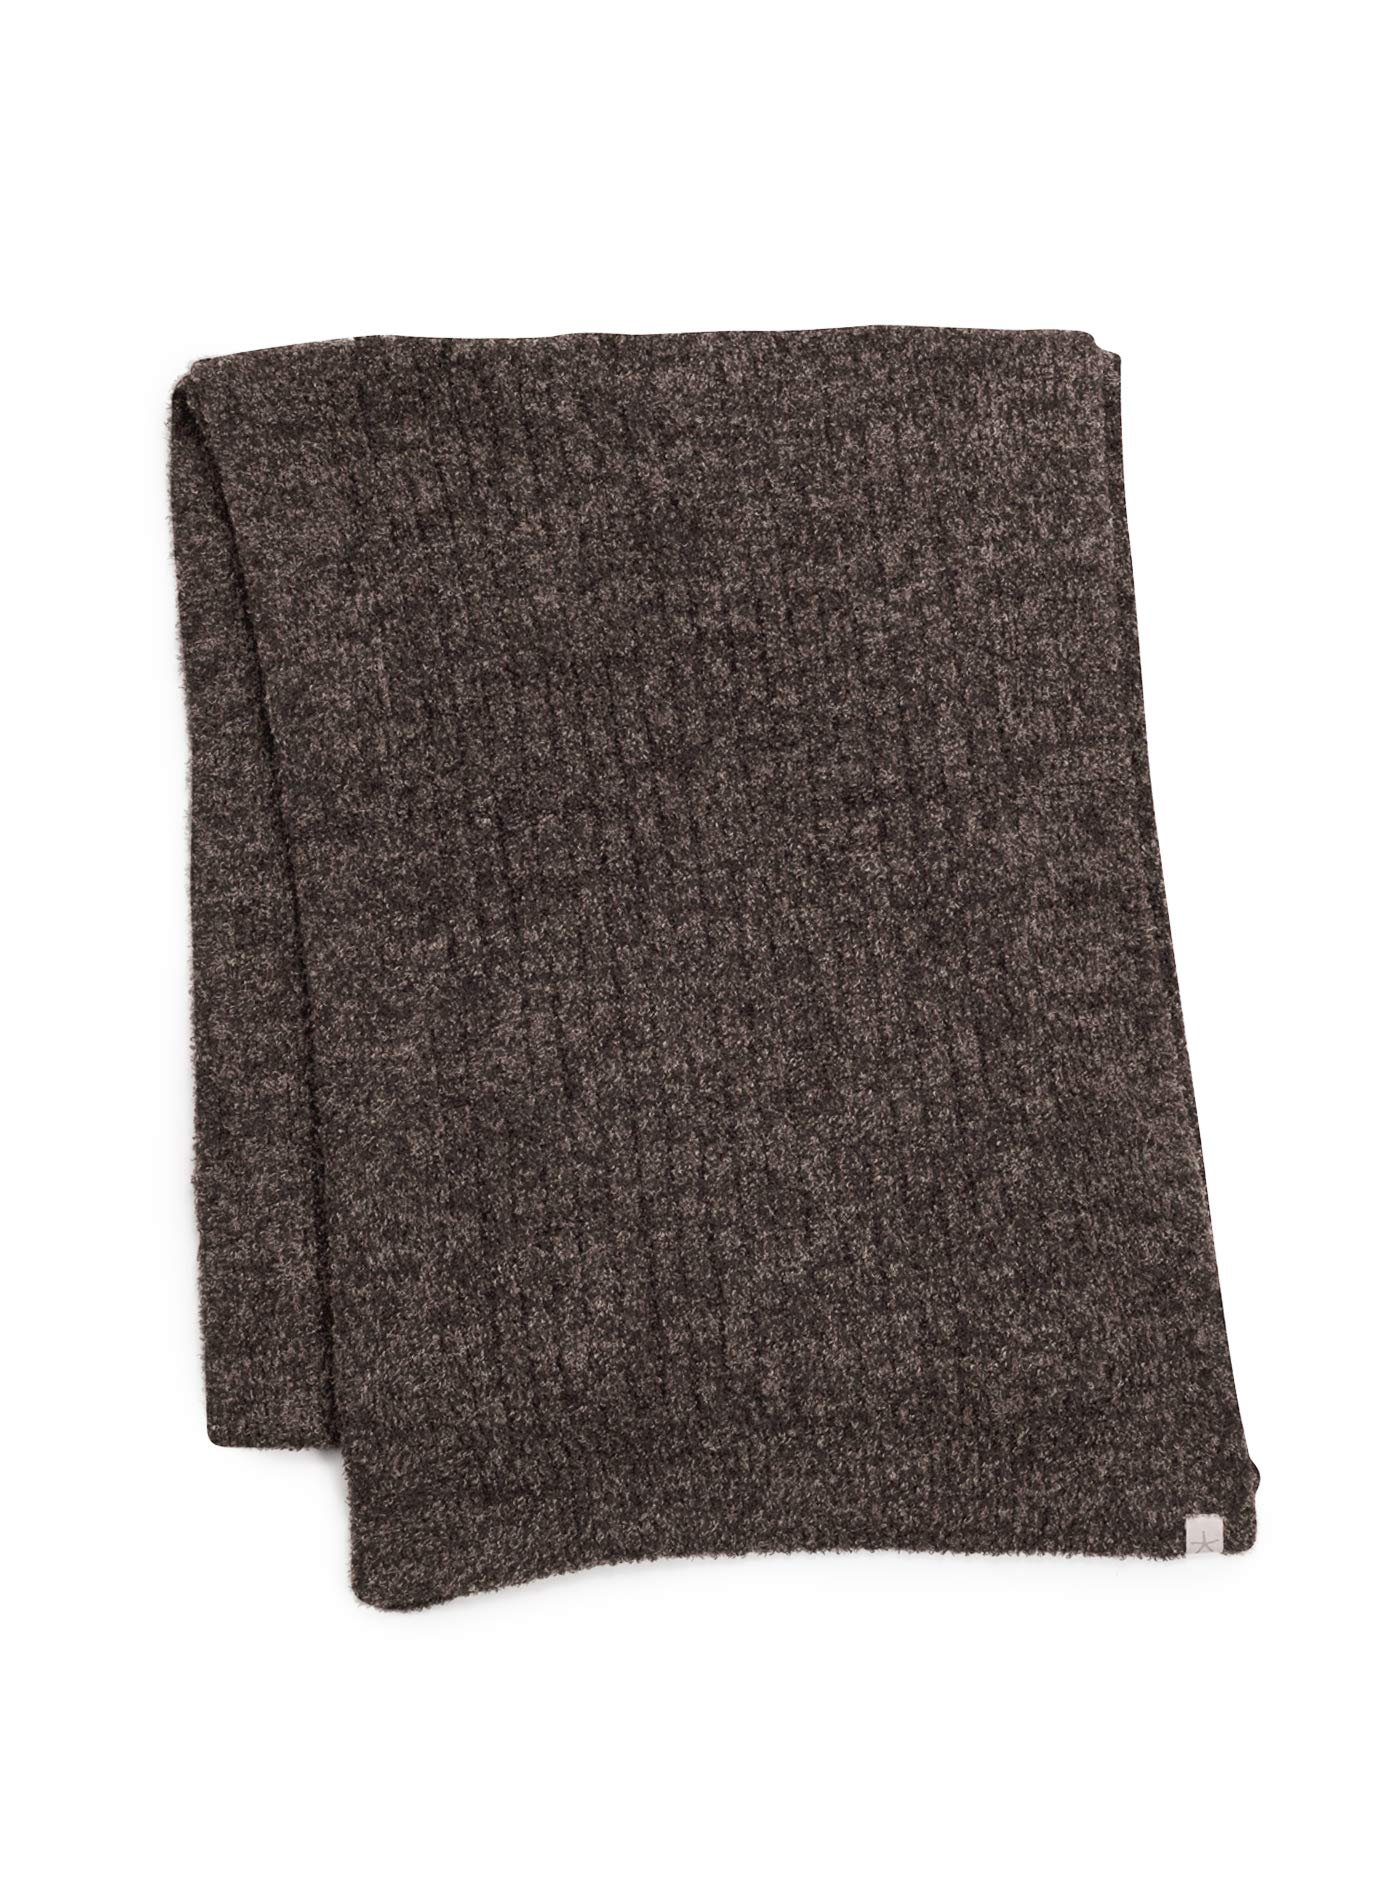 Barefoot Dreams CozyChic Lite Ribbed Scarf HE Espresso/Cocoa by Barefoot Dreams